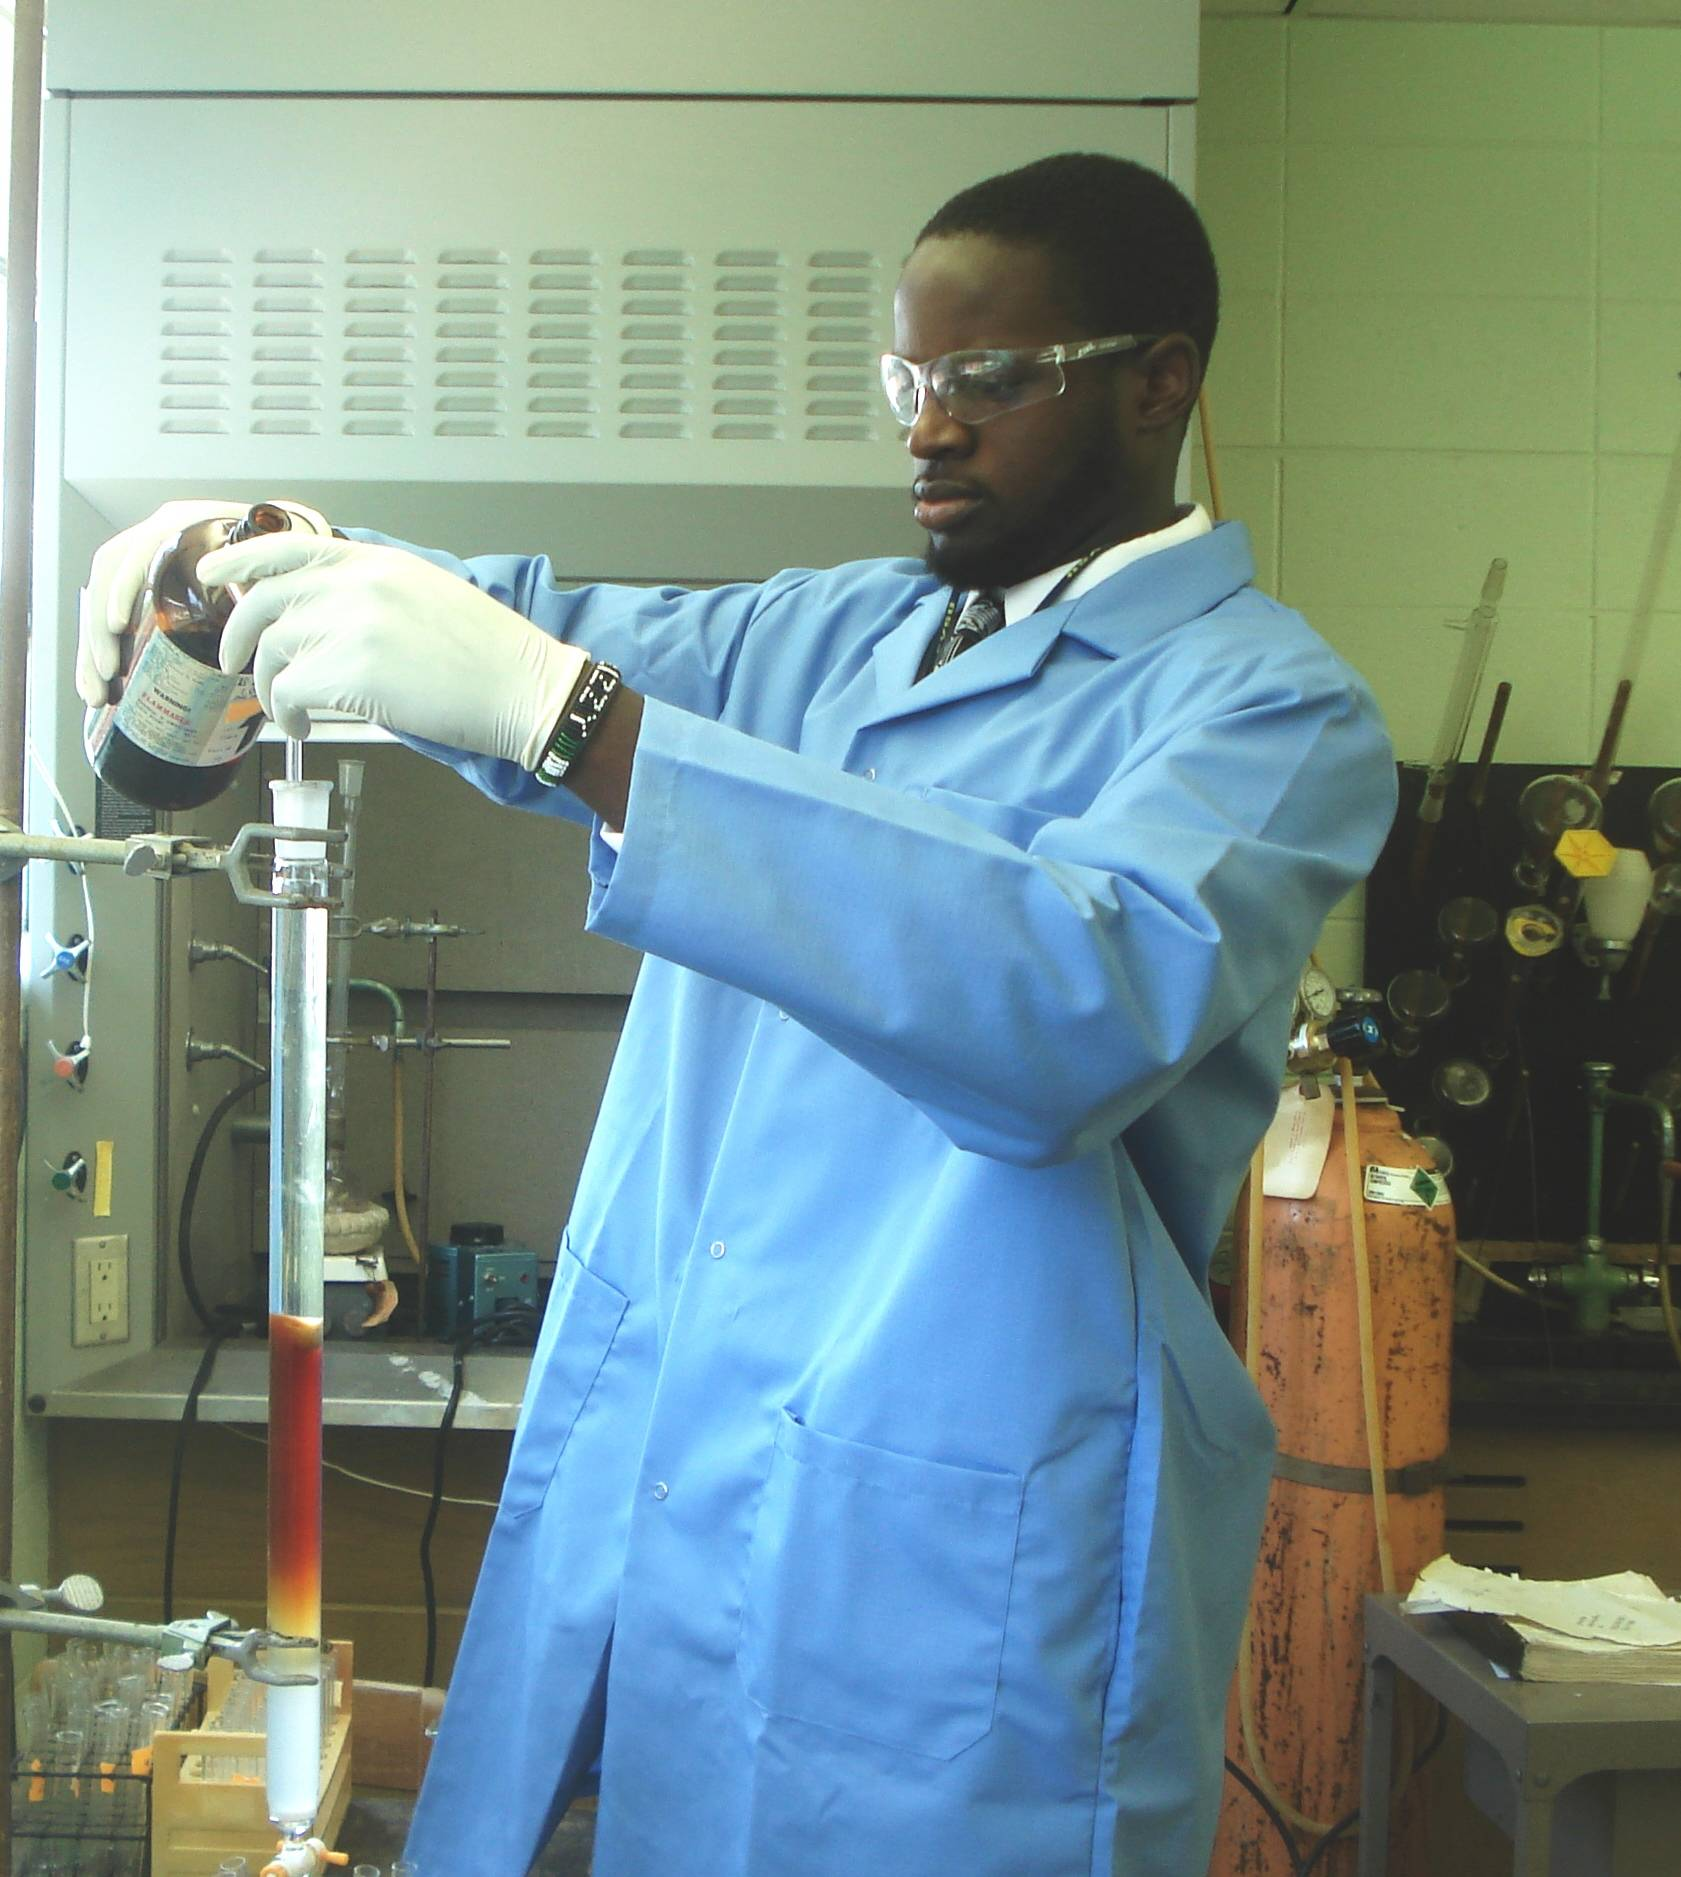 Man in blue labcoat pouring a container into a beaker